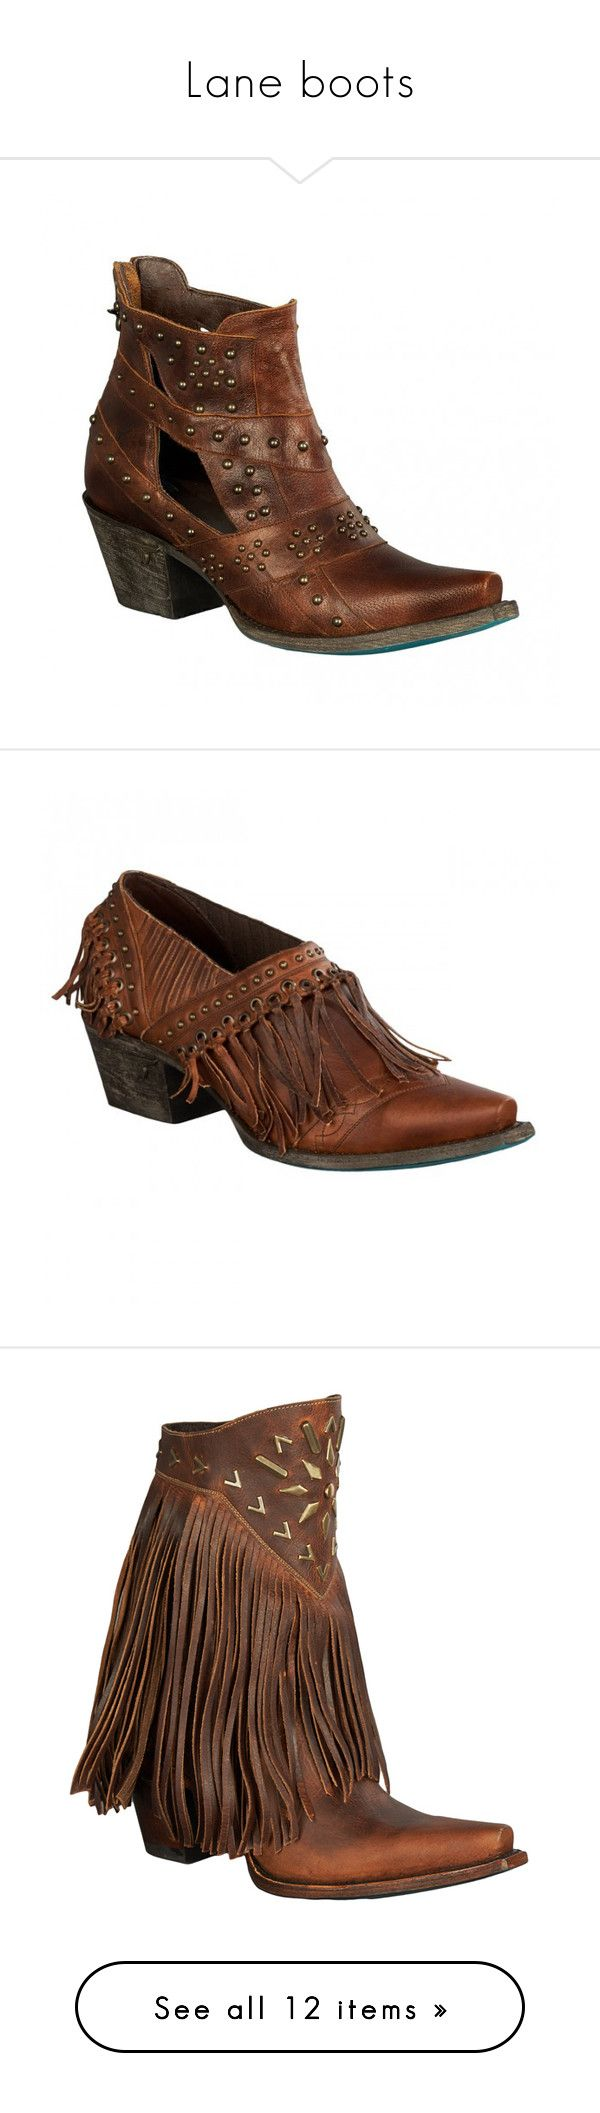 """Lane boots"" by vesper1977 ❤ liked on Polyvore featuring shoes, boots, brown, mid-calf boots, ankle cowboy boots, fringe ankle boots, brown leather boots, brown ankle boots, brown cowboy boots and ankle booties"